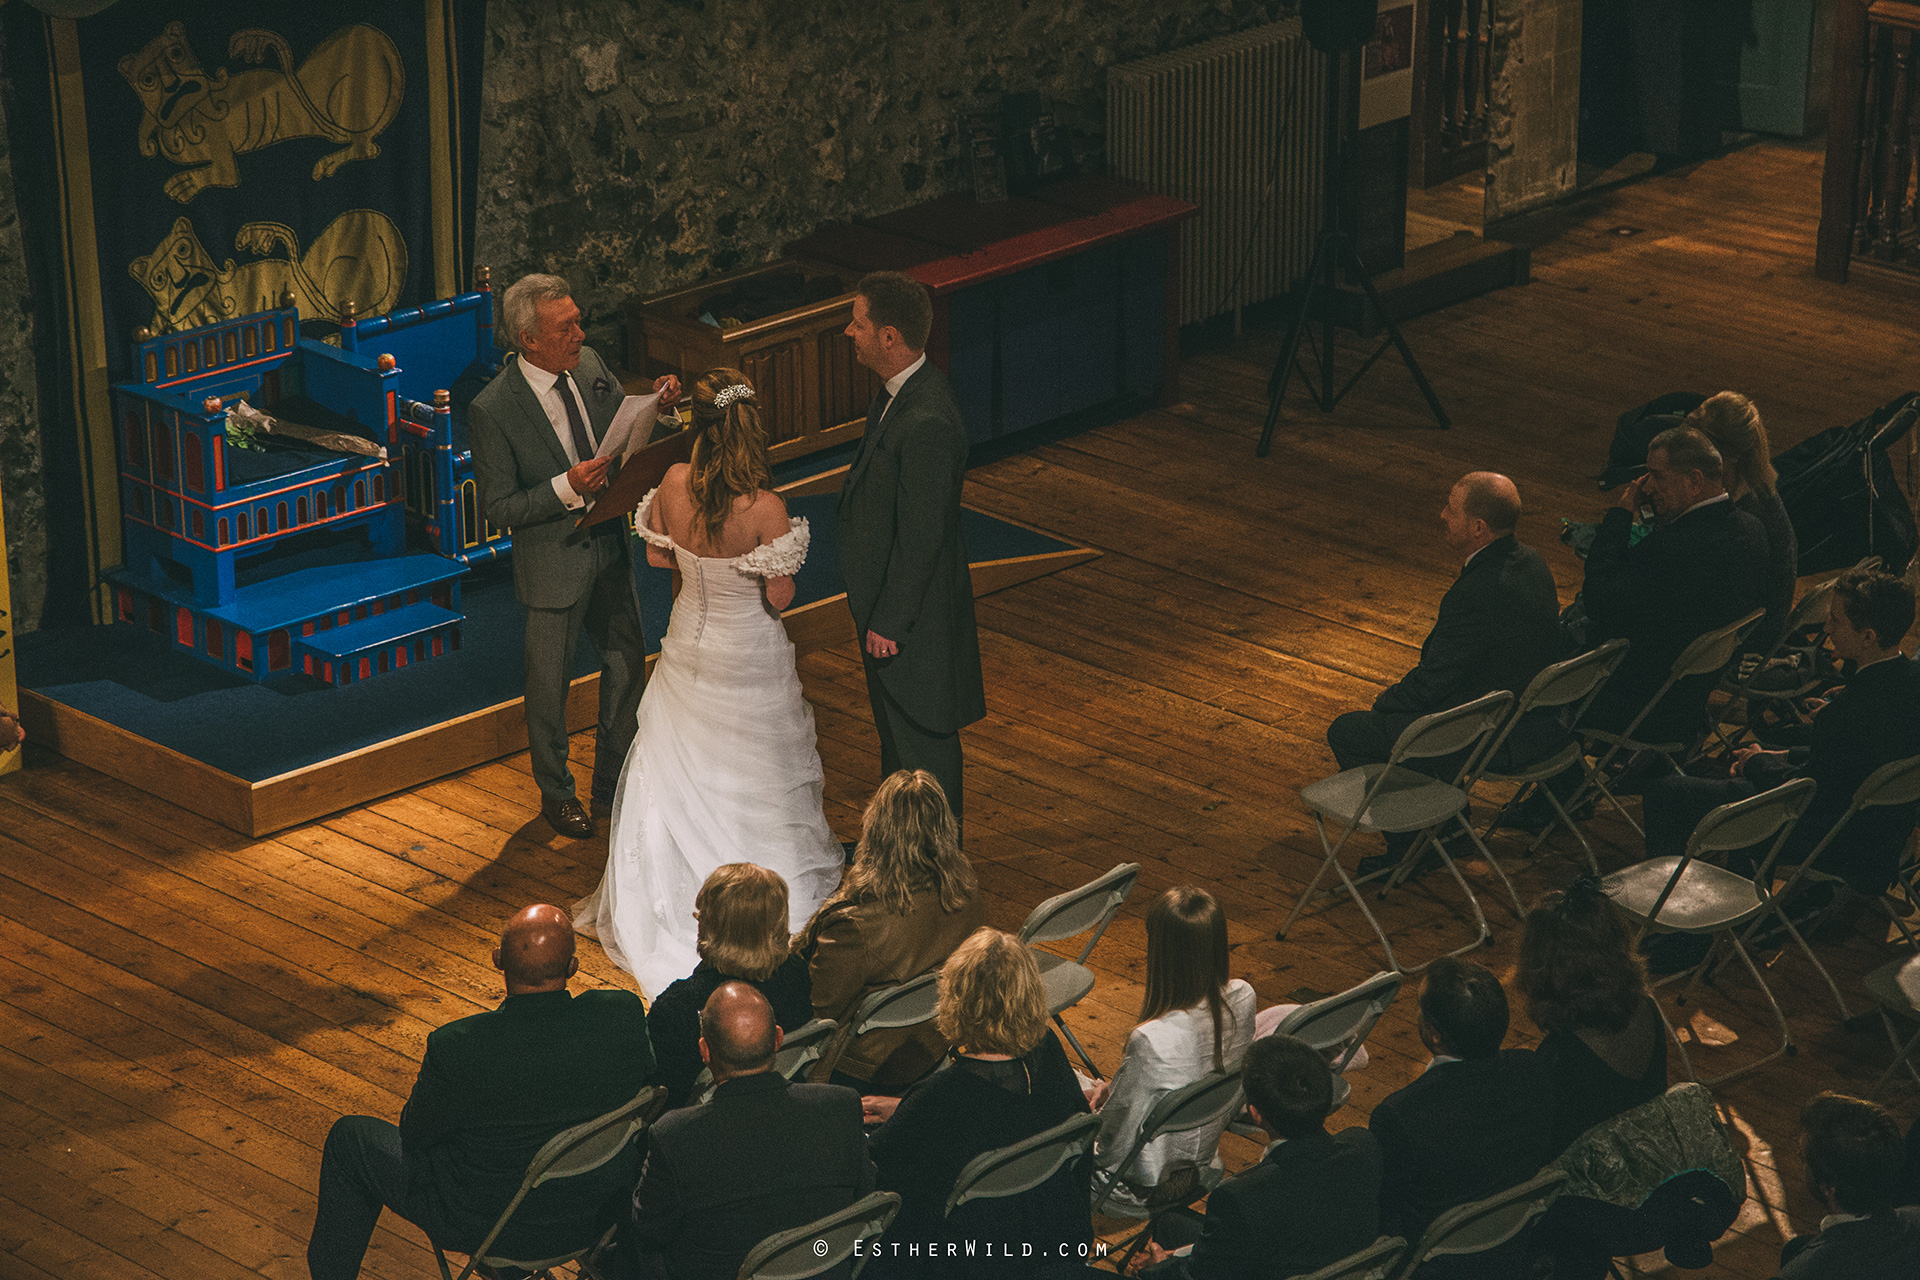 norwich_castle_wedding_esther_wild_photographer_norfolk (34).jpg